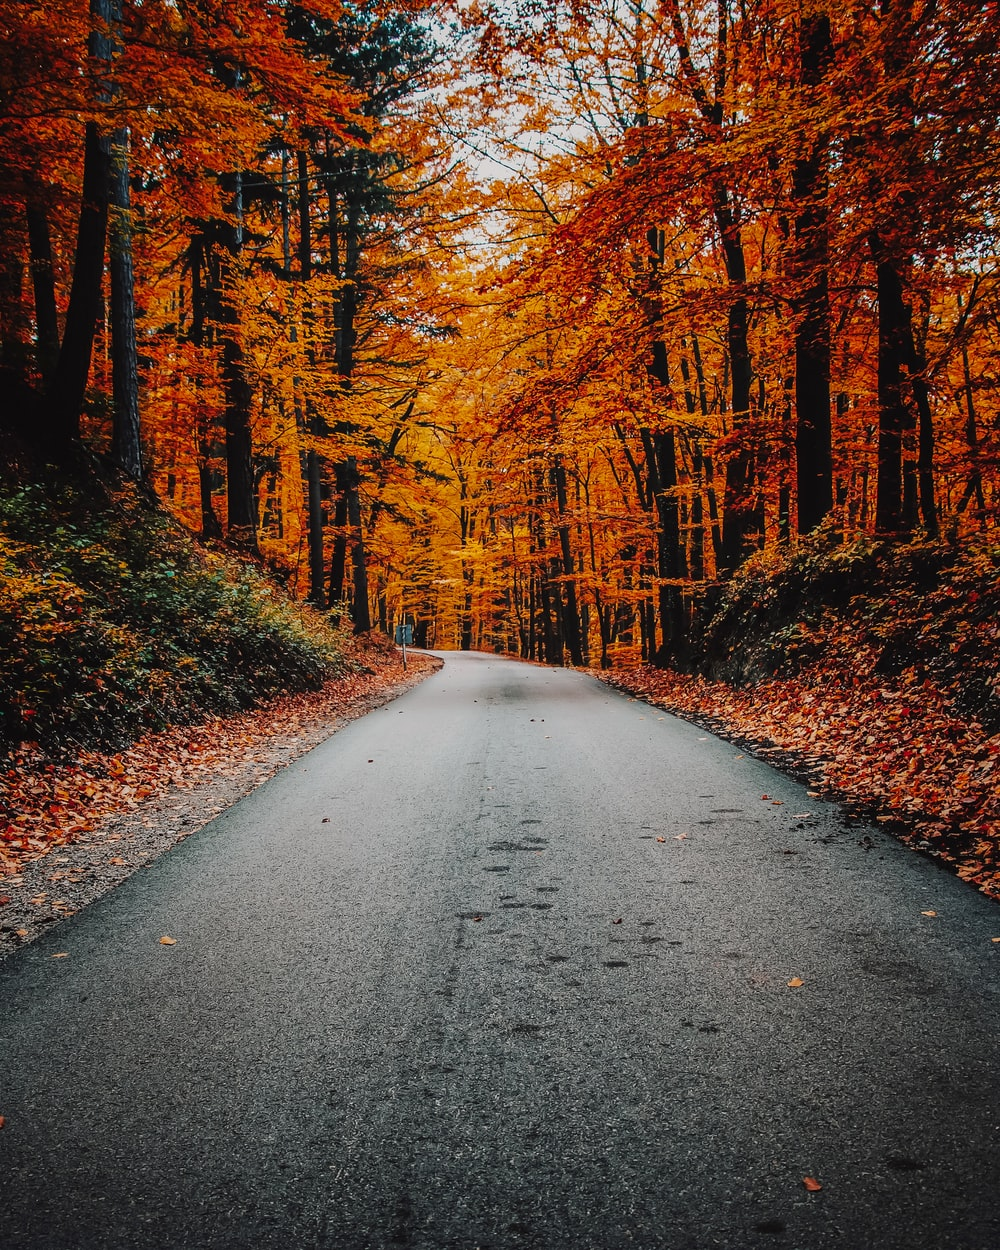 concrete road in forest